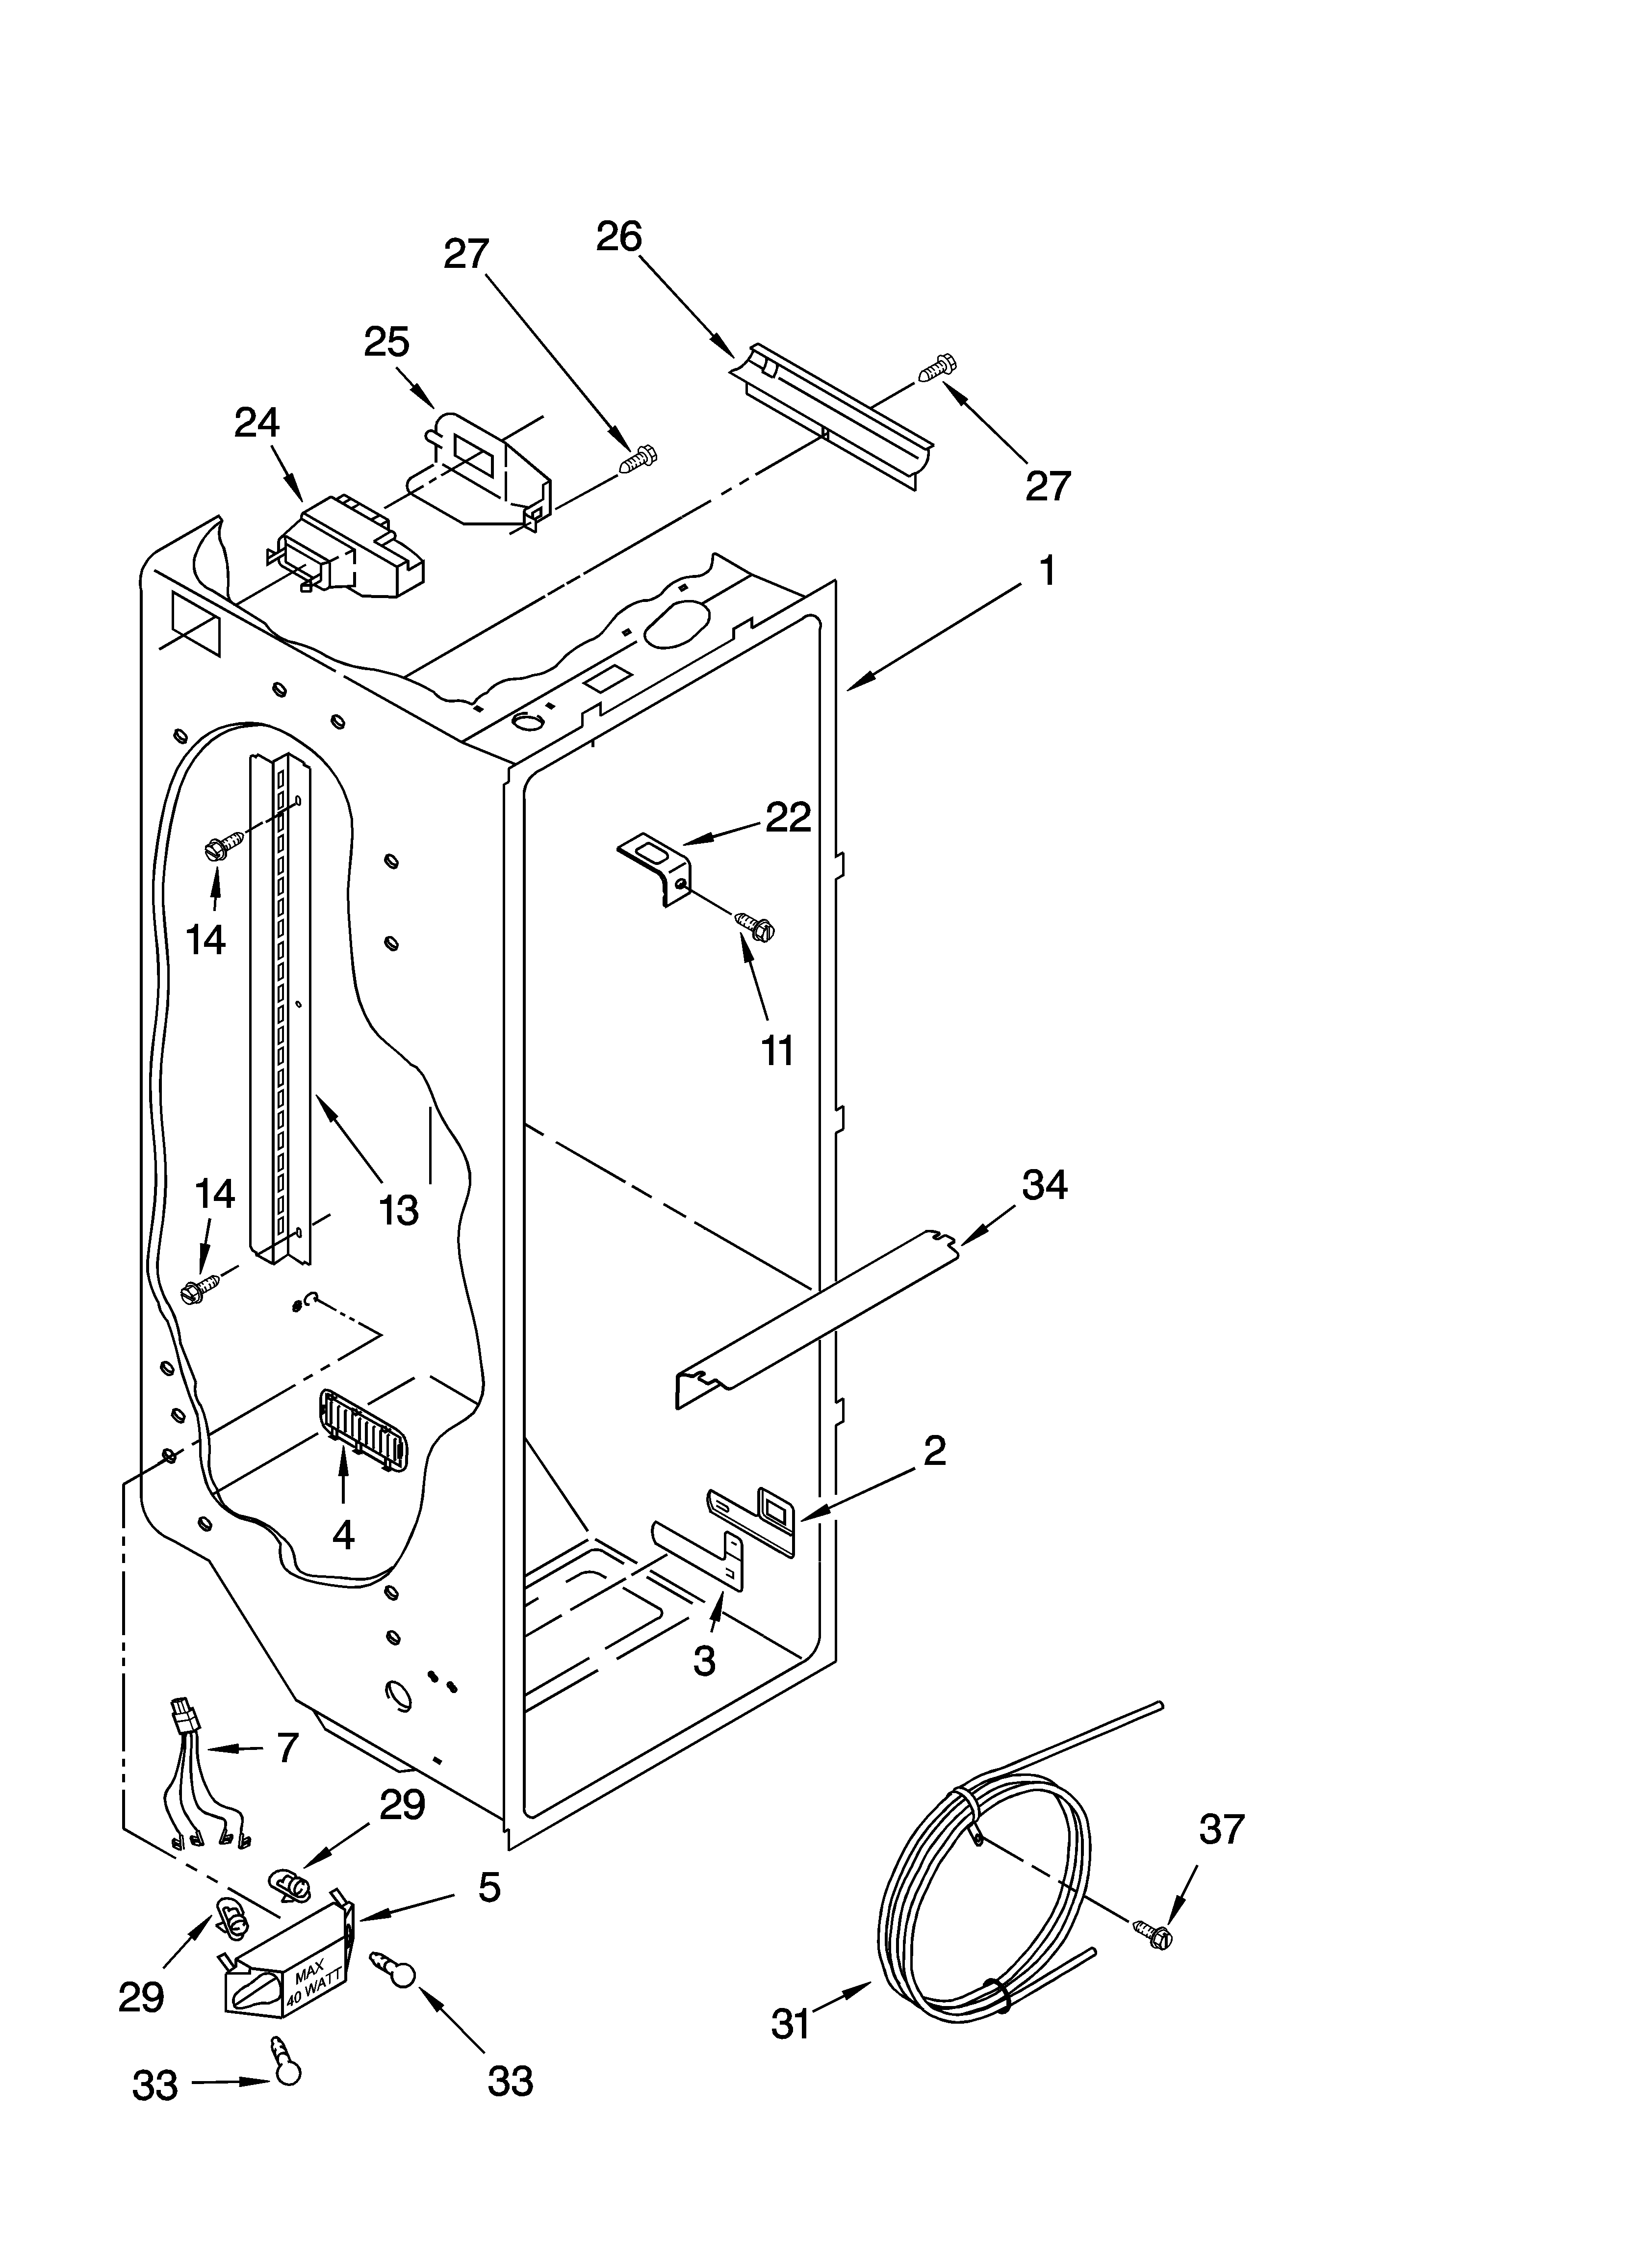 Whirlpool ED5FHGXNQ00 refrigerator liner parts diagram